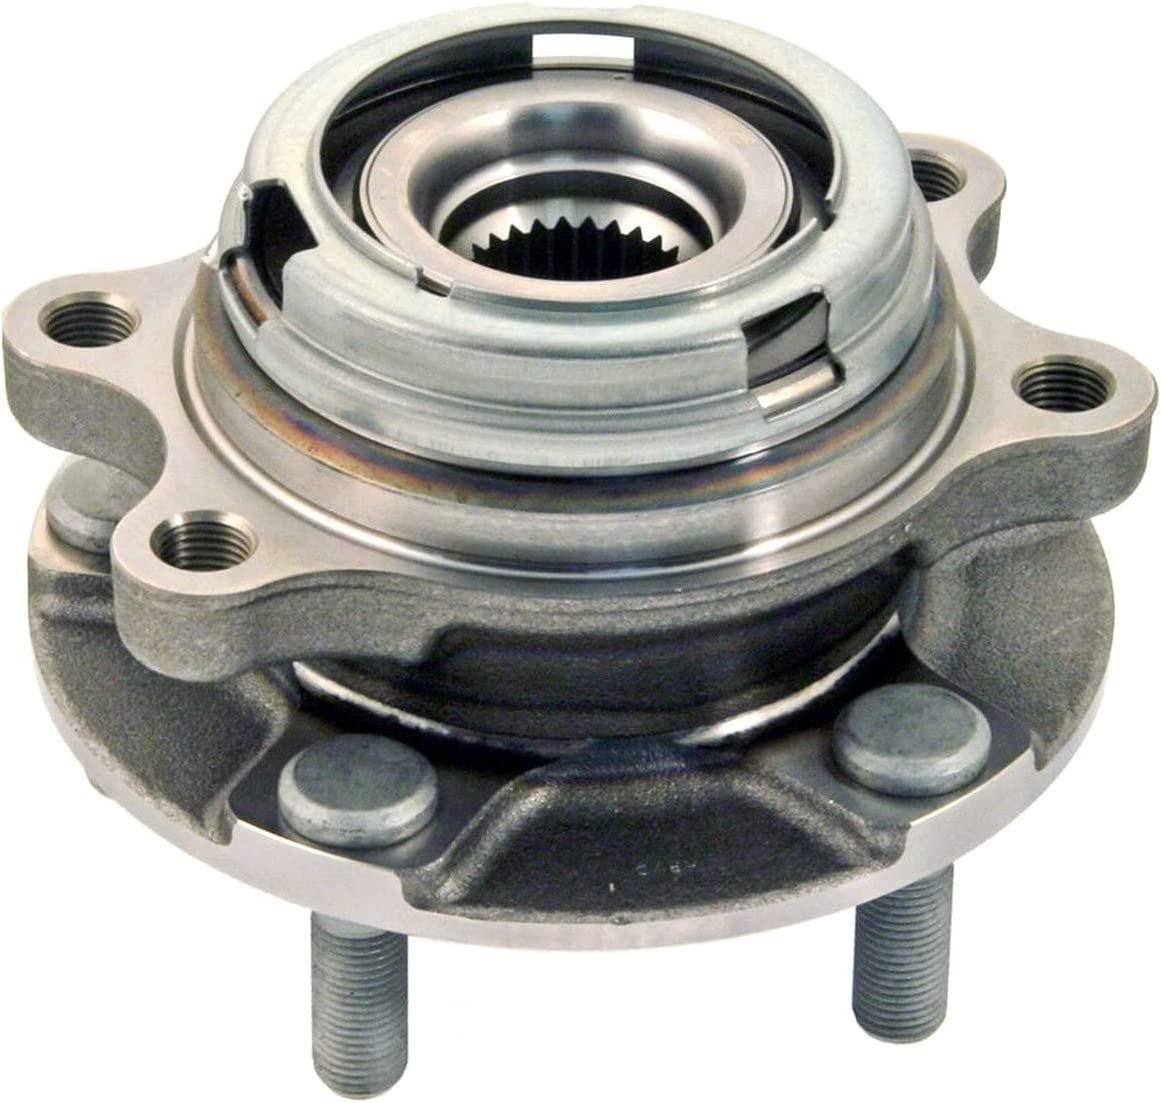 Front Wheel Hub Assembly 通販 新作 大人気 激安 fit for 2004-2009 2 Nissan Murano Quest